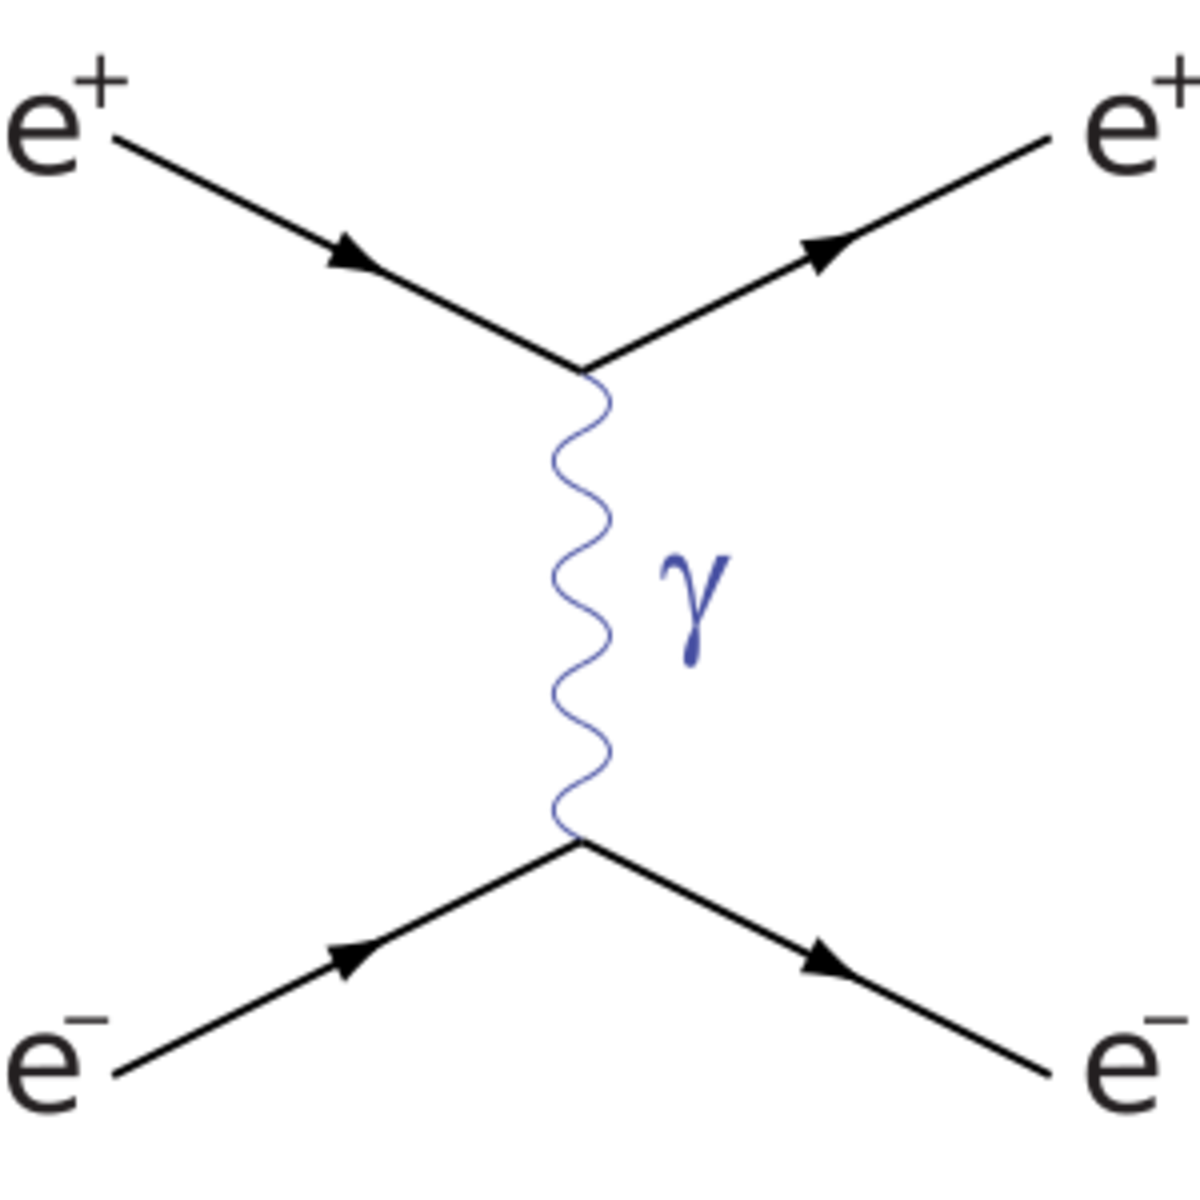 Feynman Diagrams: An Introduction